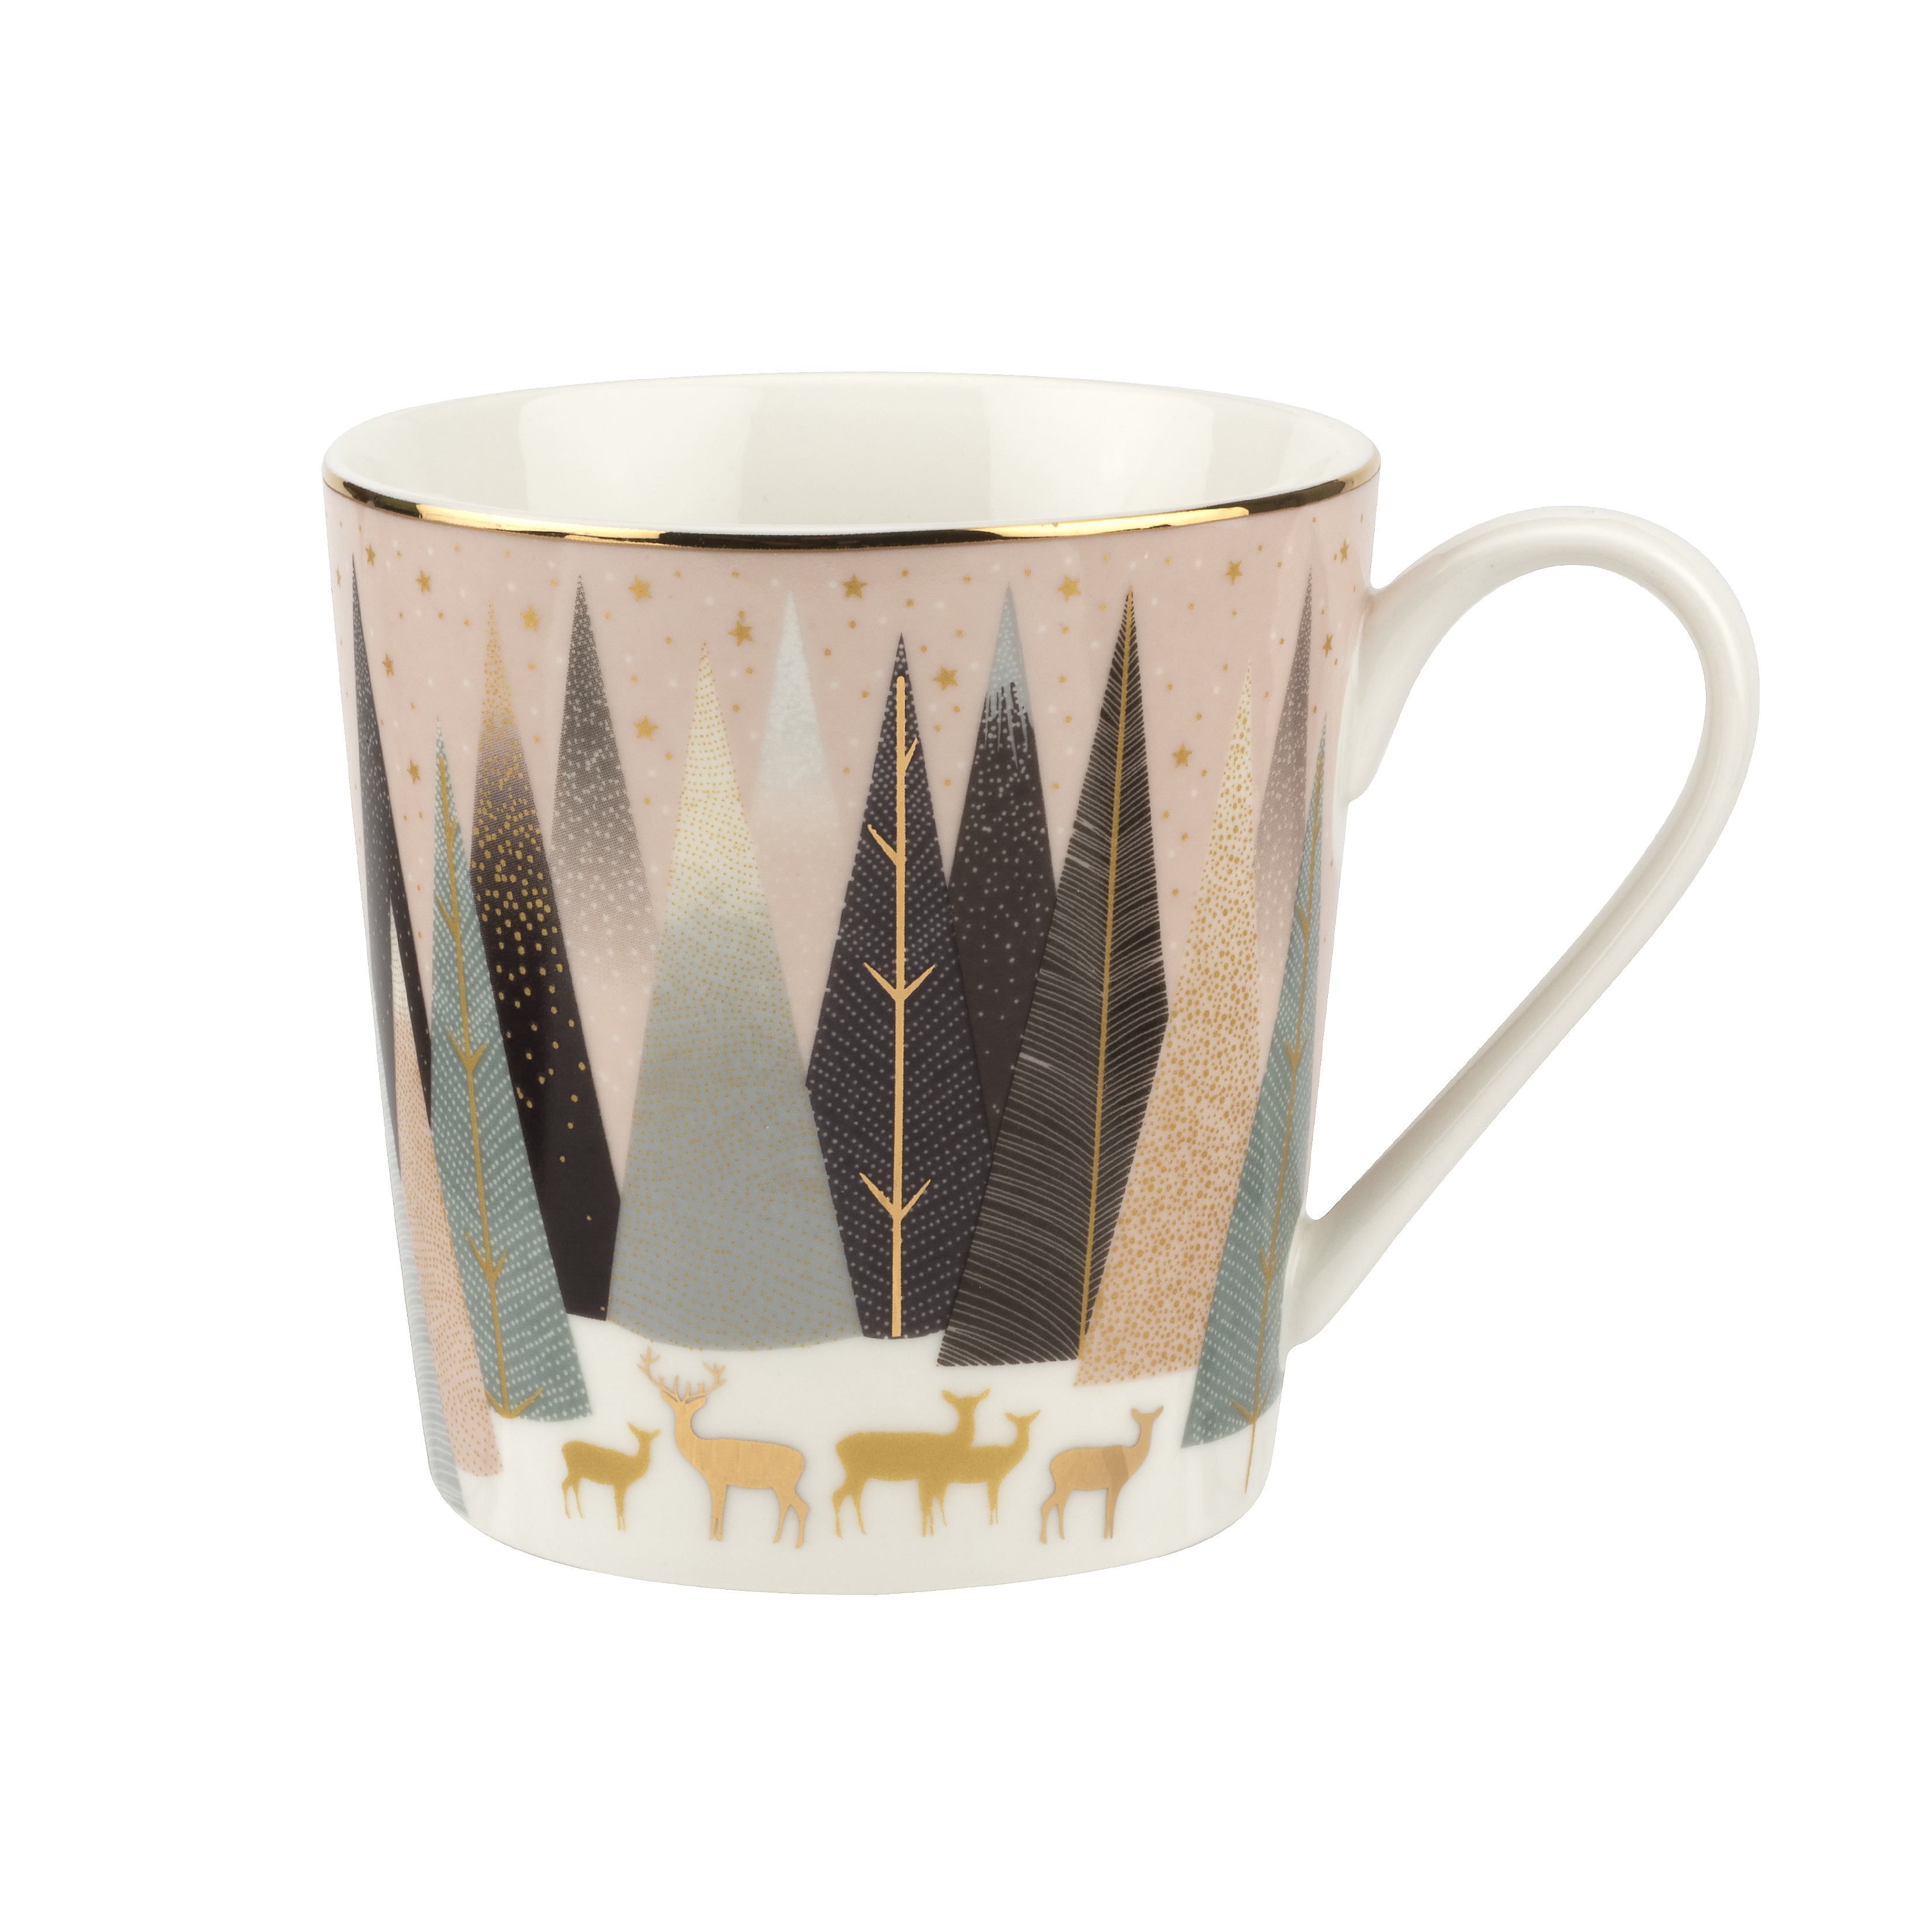 Sara Miller London for Portmeirion Frosted Pines Set of 4 Mugs 12 oz image number 3